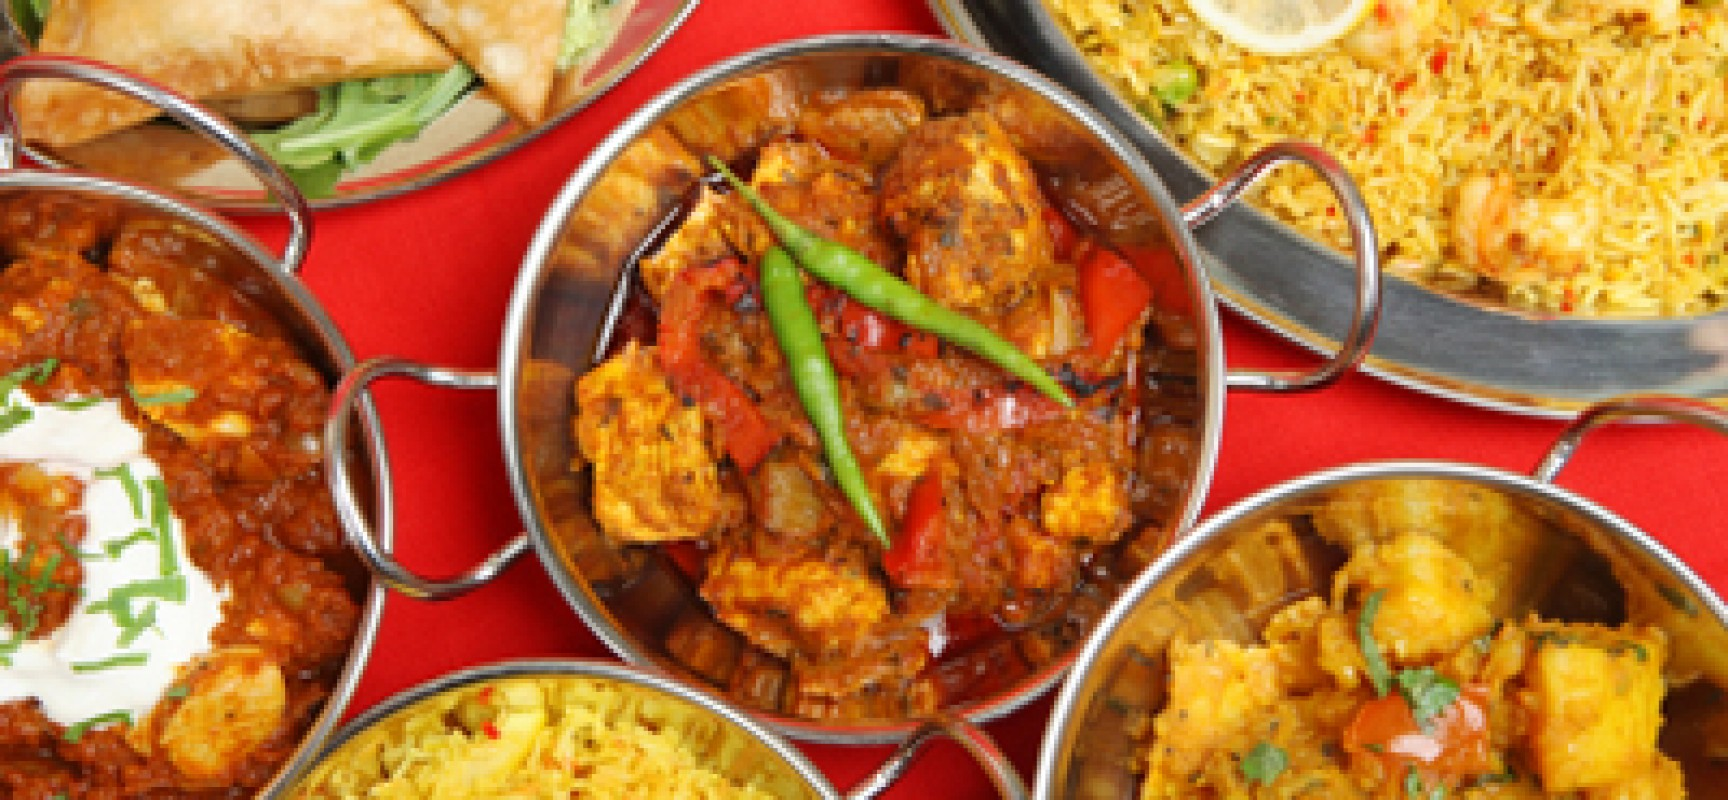 the indian cuisine The indian cuisine offers delicious food, serving classic indian dishes a la carte style, or come in and try our buffet if you're craving traditional indian plates like classic paneer butter masala, chicken vindaloo, or one of our biryanis like goat or prawn biryani.